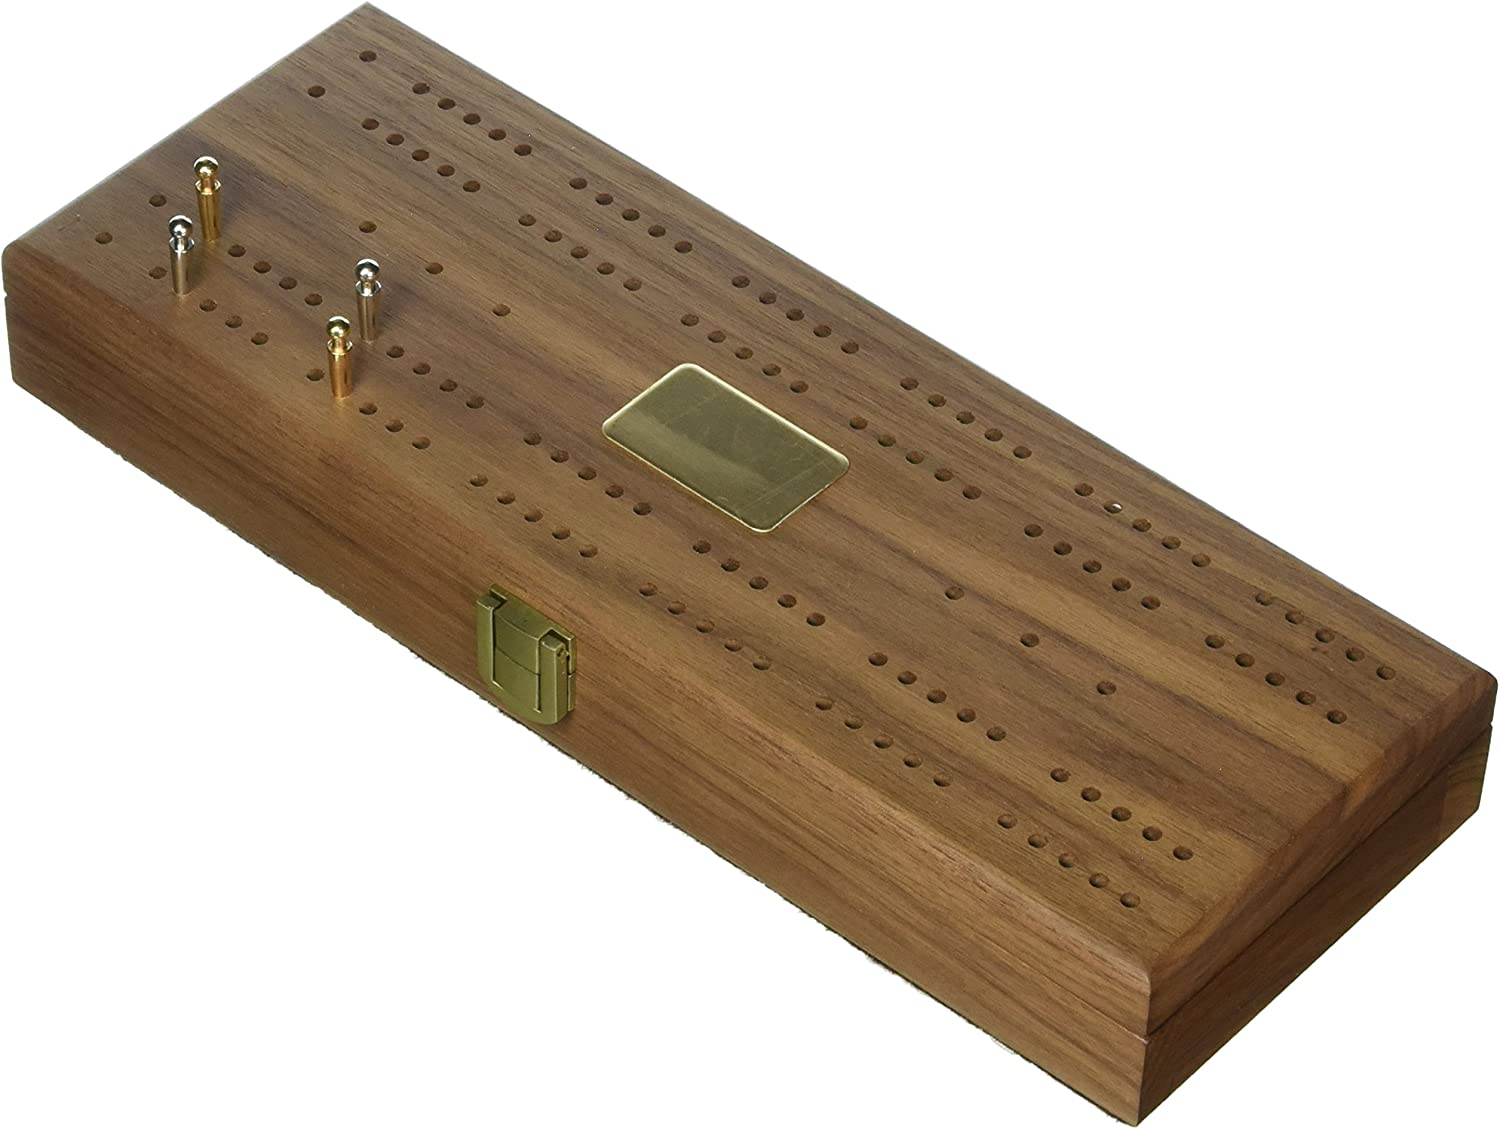 """""""Mariner"""" Classic Domino Set with Black Walnut Case - Premium Quality 28 Indestructible Double-Six Dominoes with 2 18 Karat Gold-plated and 2 Nickel-plated Scoring Pegs"""